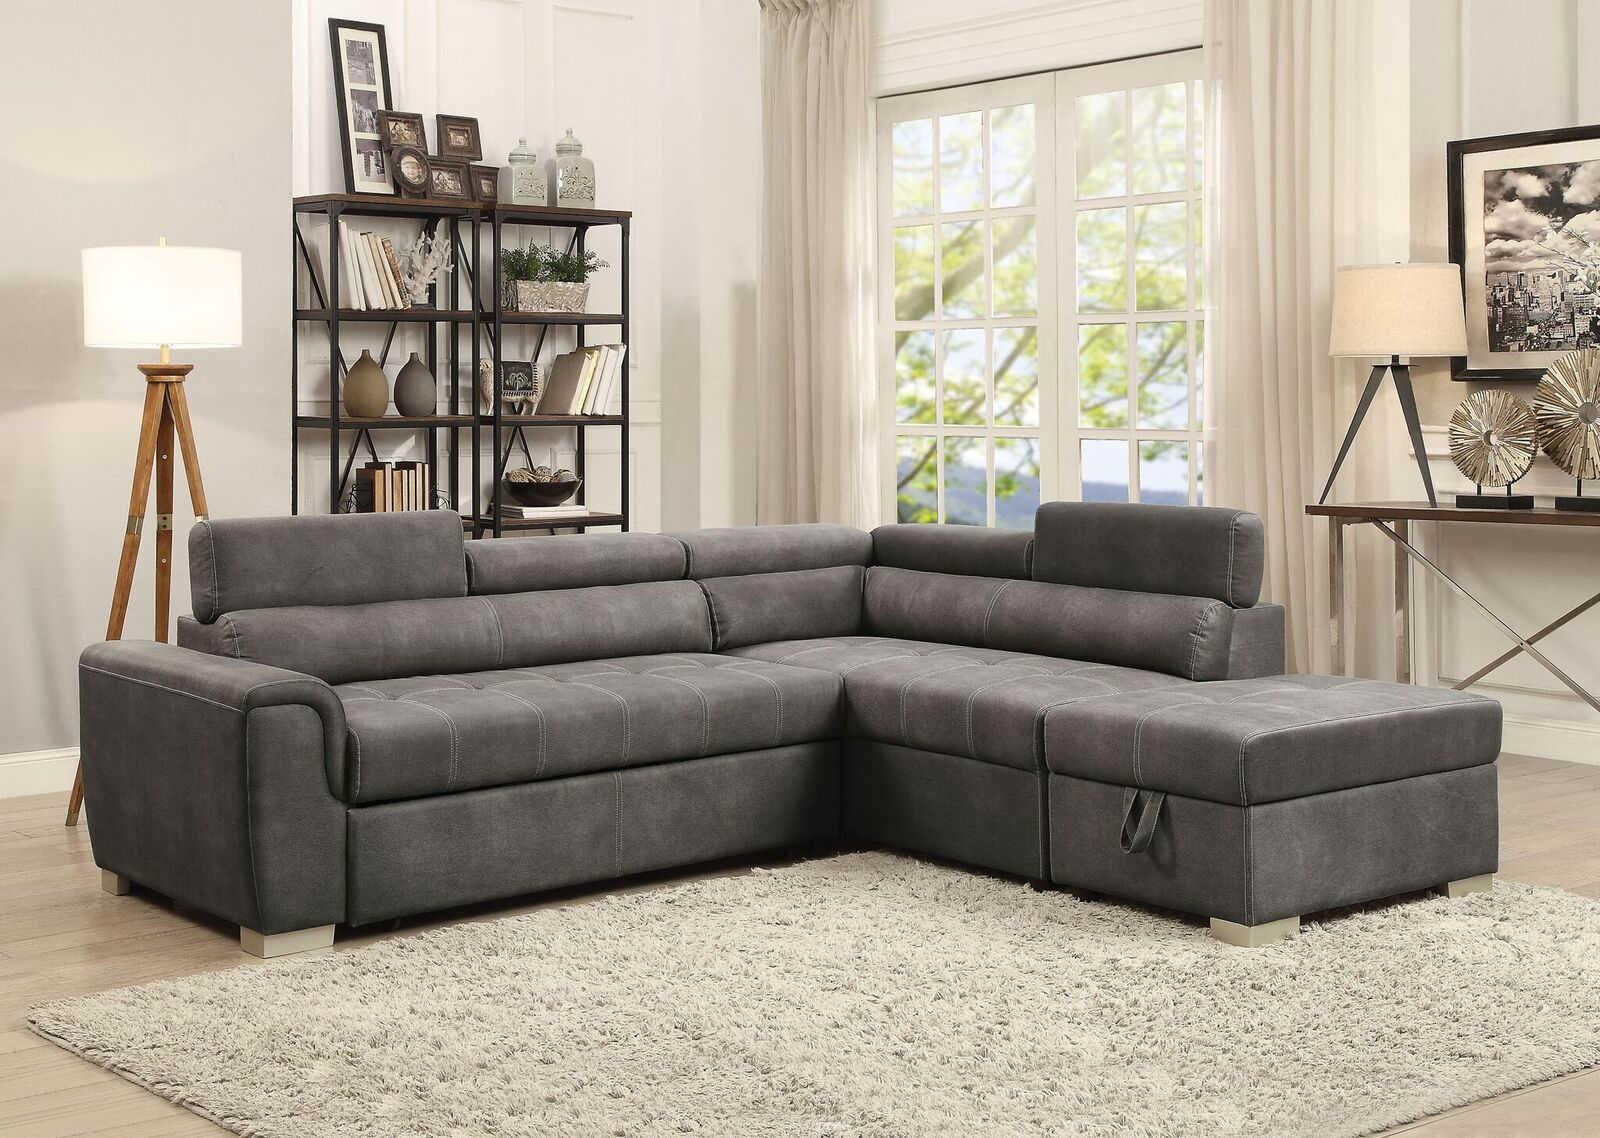 Acme Furniture Thelma Gray Polished Sectional Sofa Sleeper and Ottoman